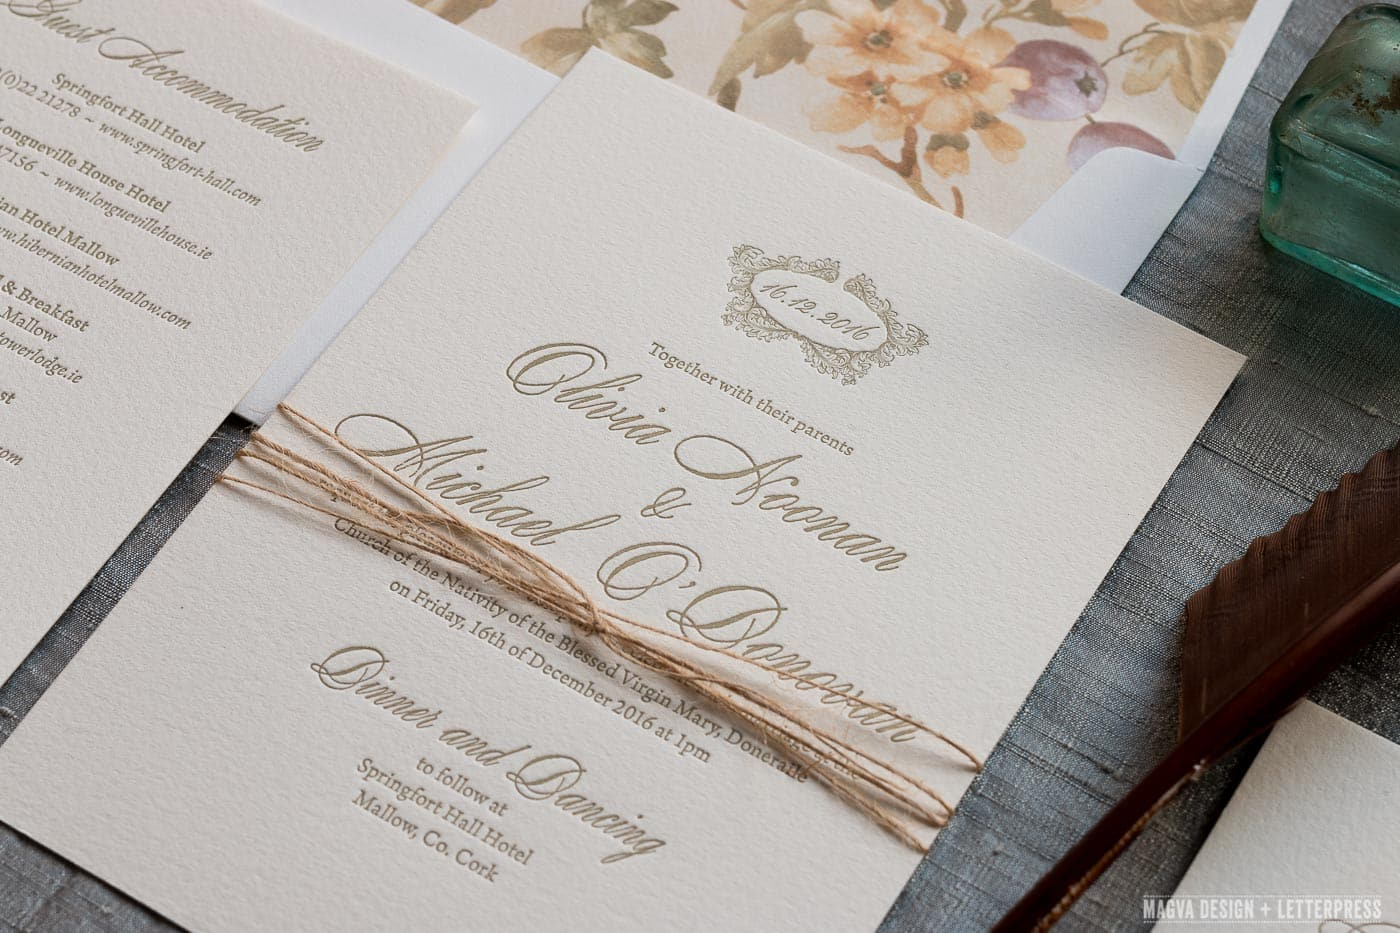 Antoinette magva design letterpress for Letterpress wedding invitations manila philippines